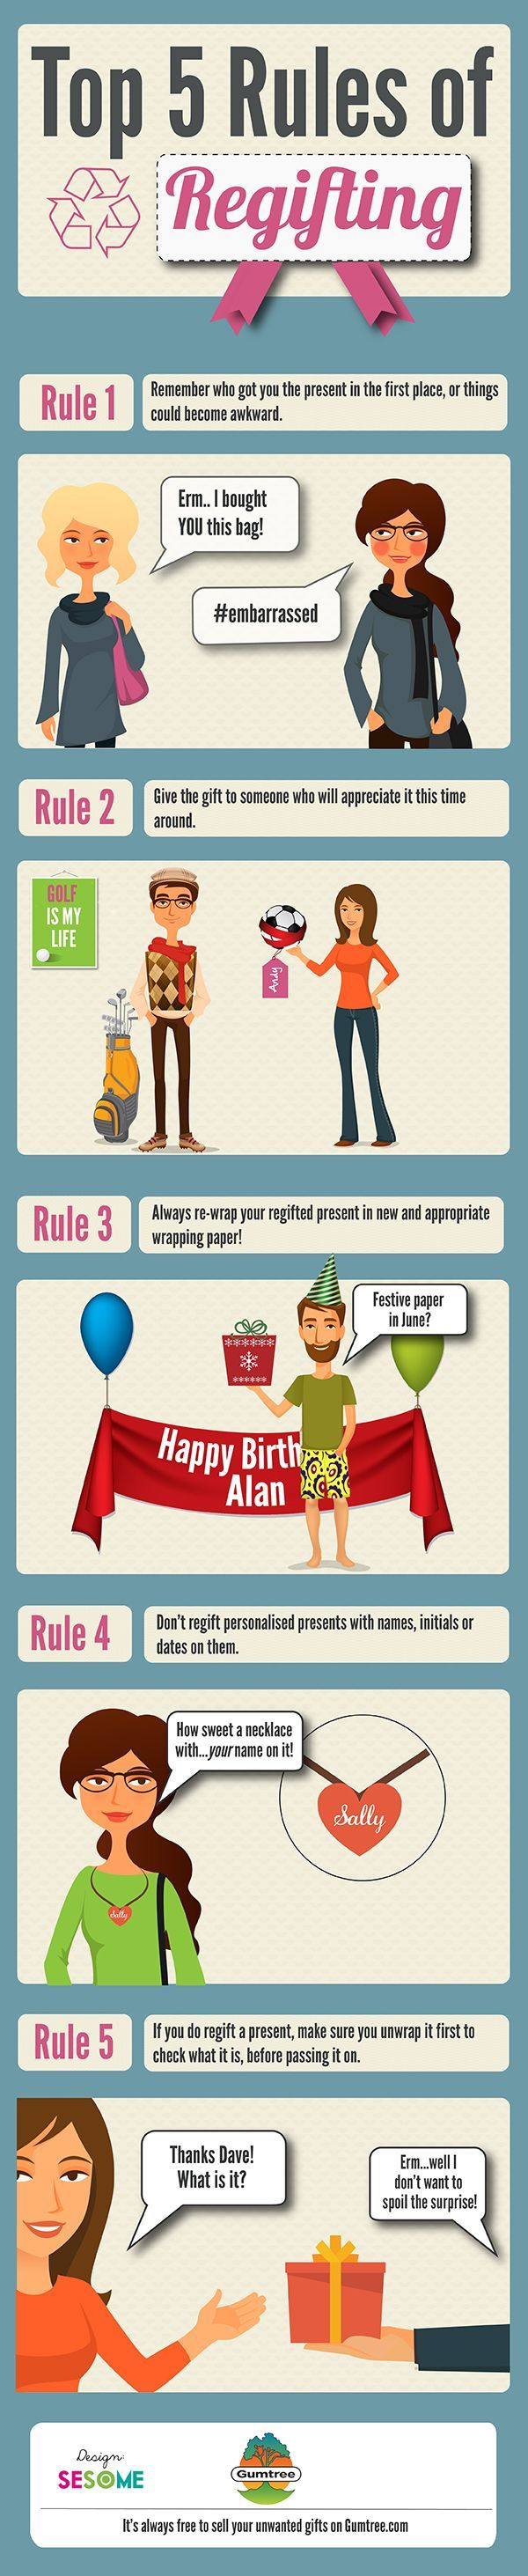 The ReGifting Rules Infographic